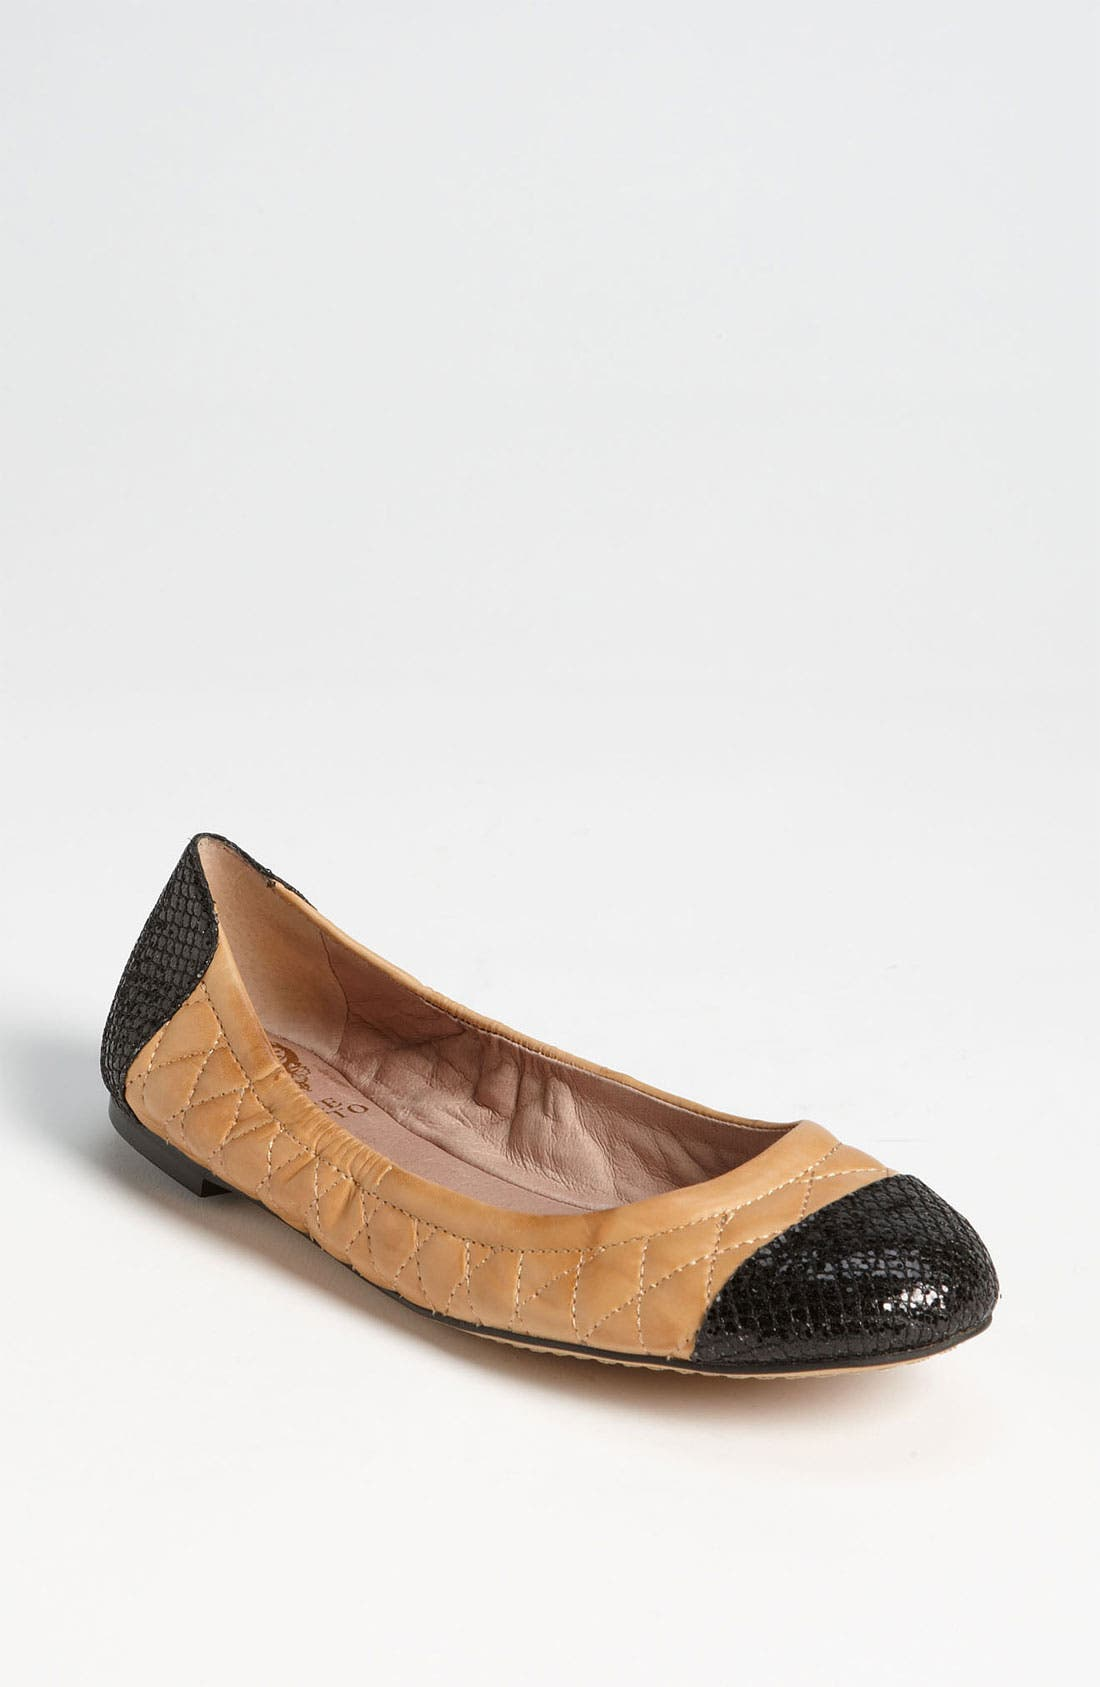 Alternate Image 1 Selected - Vince Camuto 'Fawna' Flat